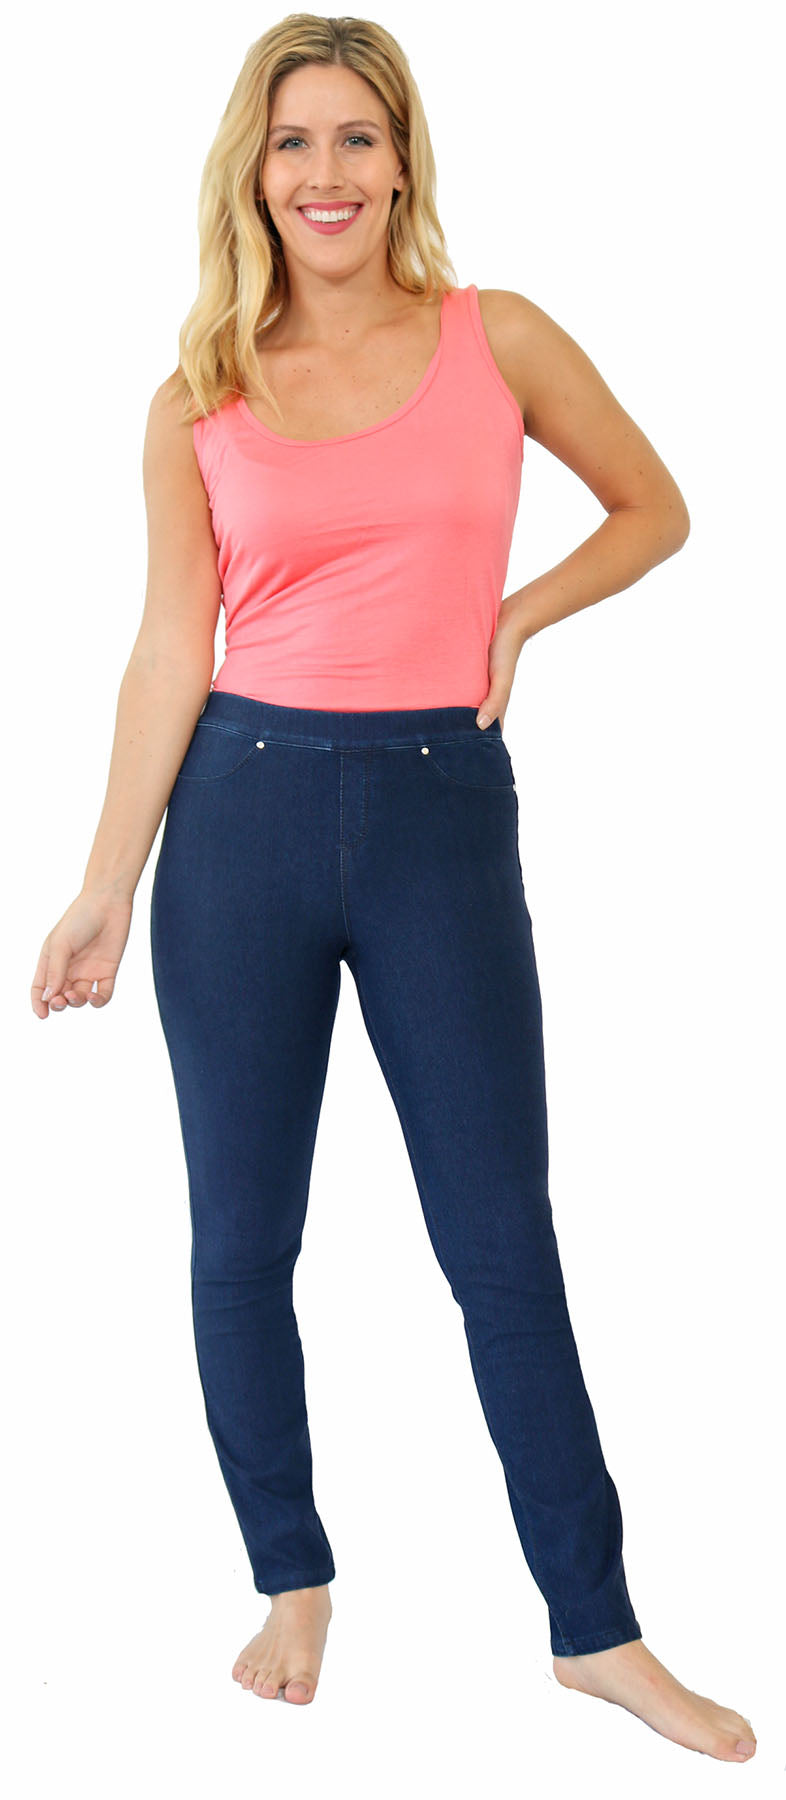 TrueSlim™ Slim Women's Leggings Indigo